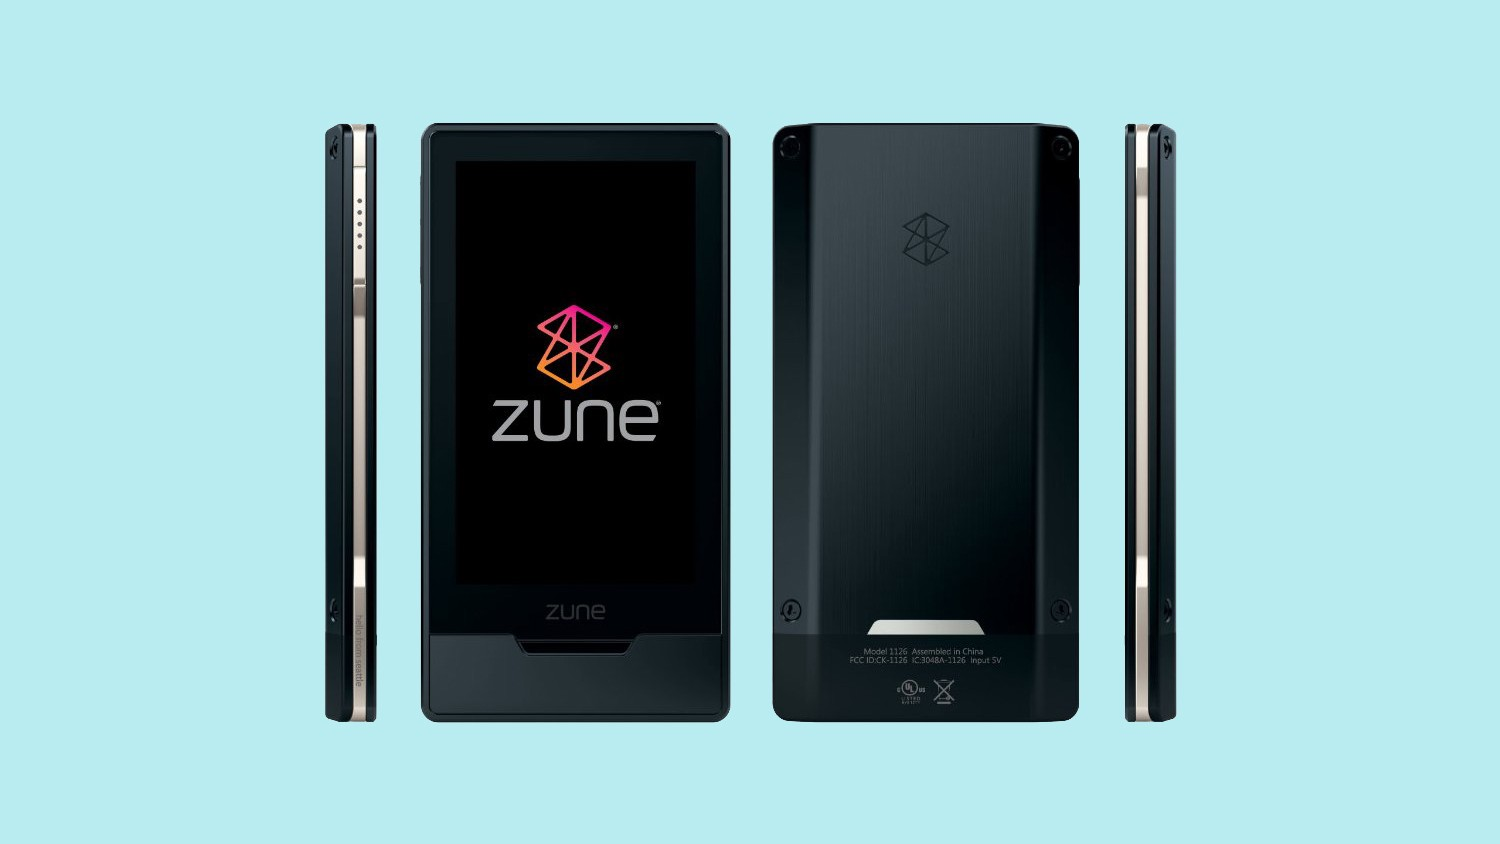 Microsoft Zune a Product Failure